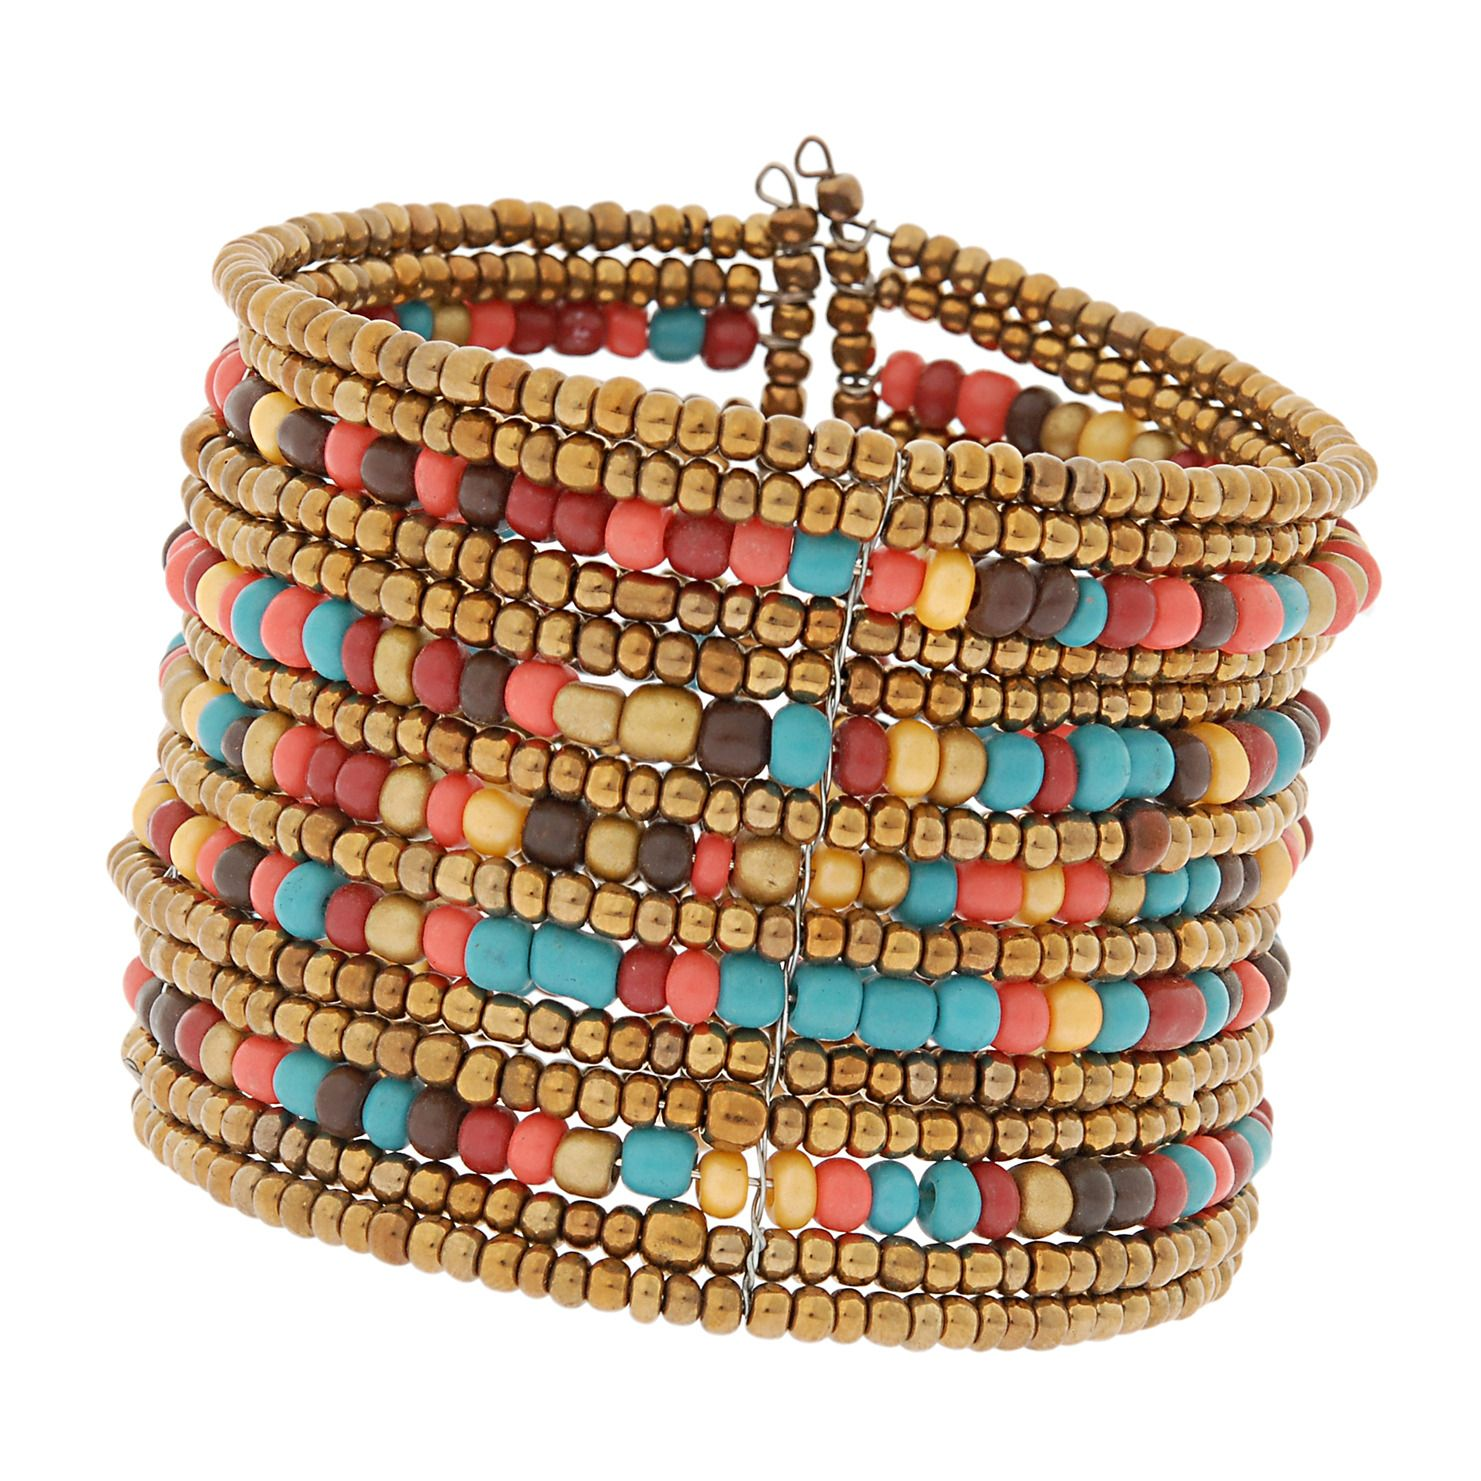 Beaded cuff diy inspiration with images memory wire